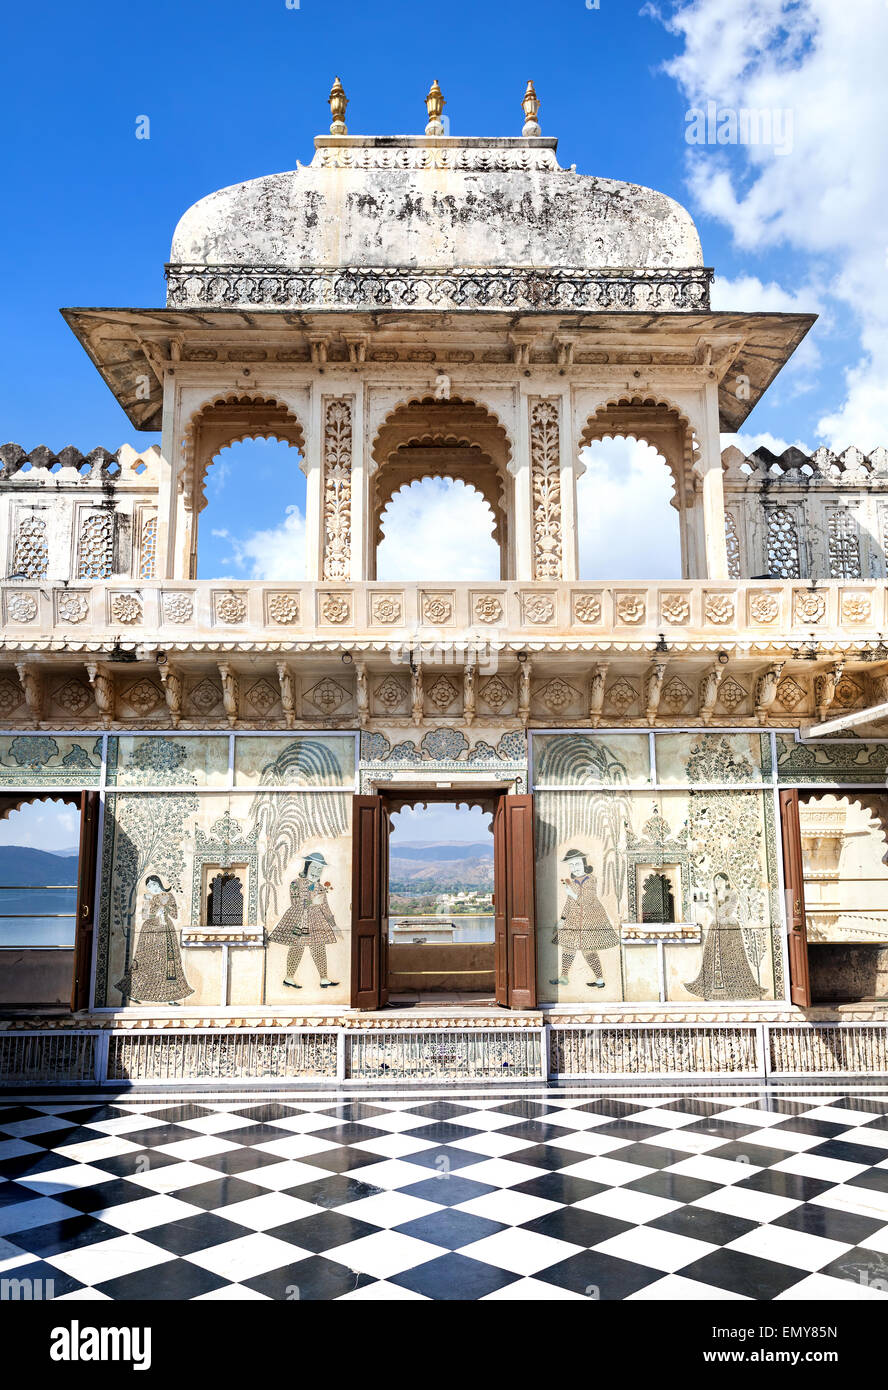 City Palace museum with surreal chess floor in Udaipur, Rajasthan, India - Stock Image